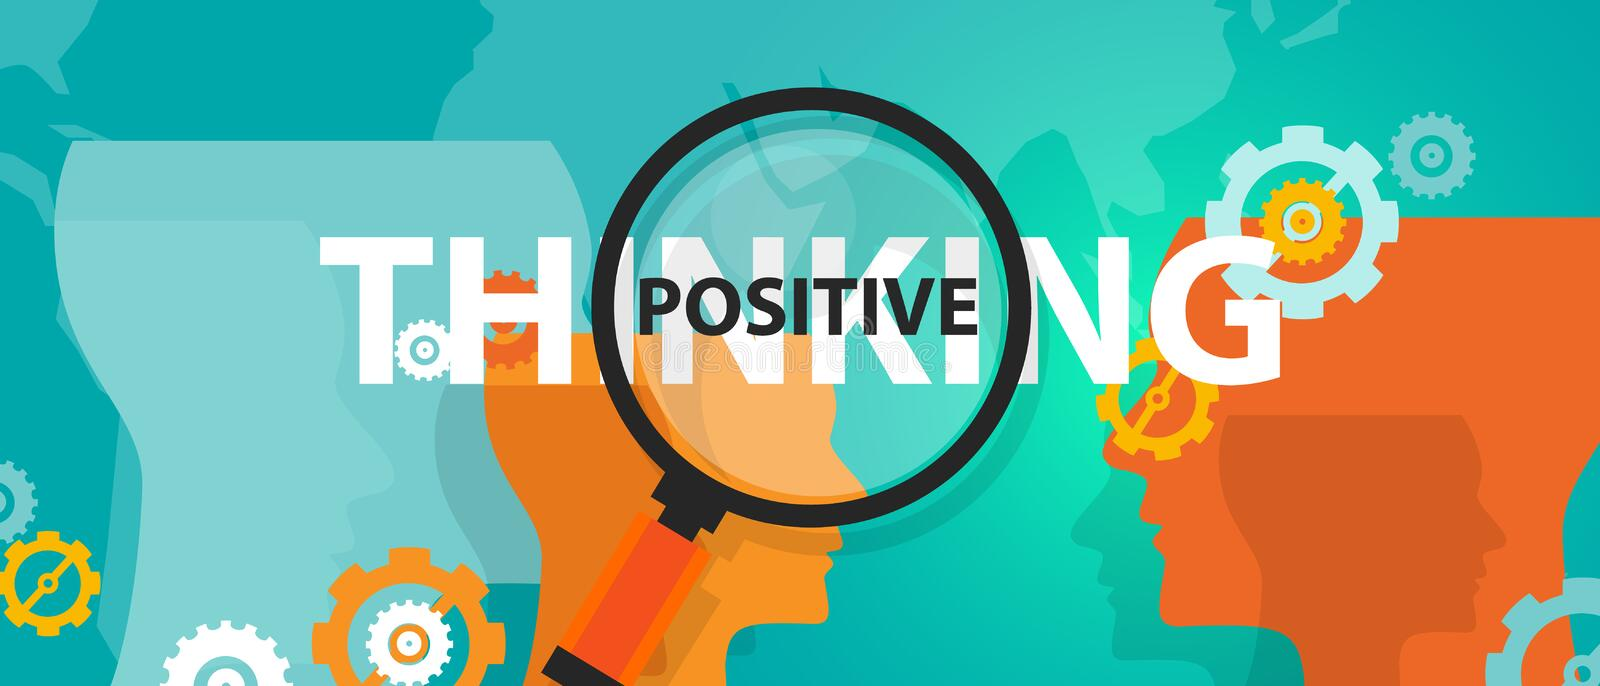 Positive thinking positivity attitude future focus concept of thinking analysis mindset thoughts. Vector royalty free illustration